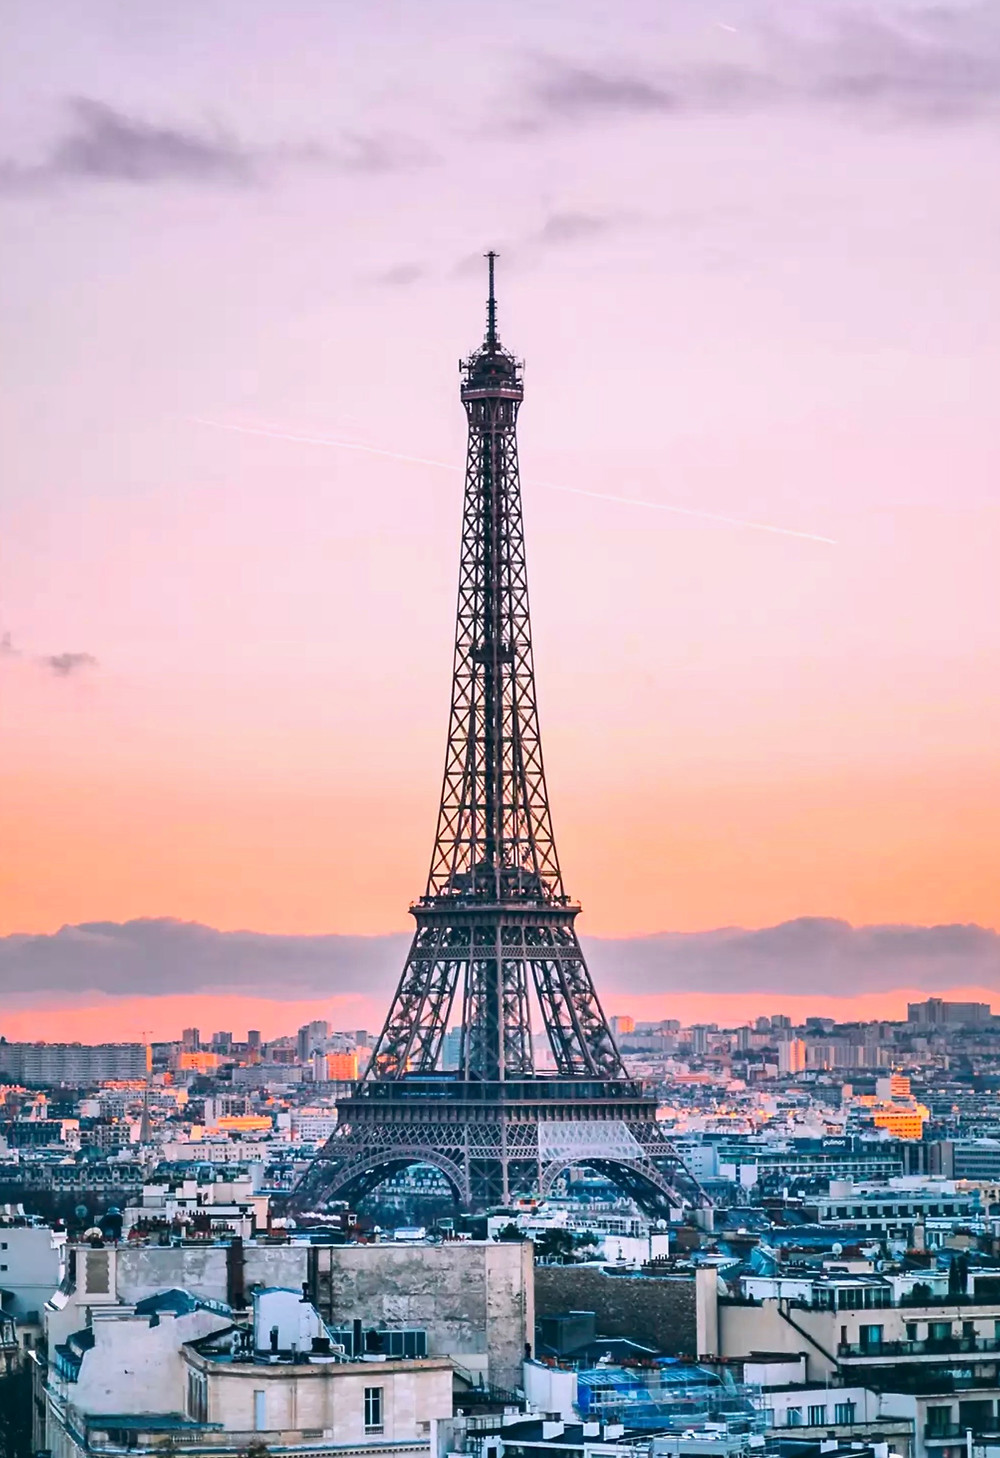 view of the Eiffel Tower from the Arc de Triomphe